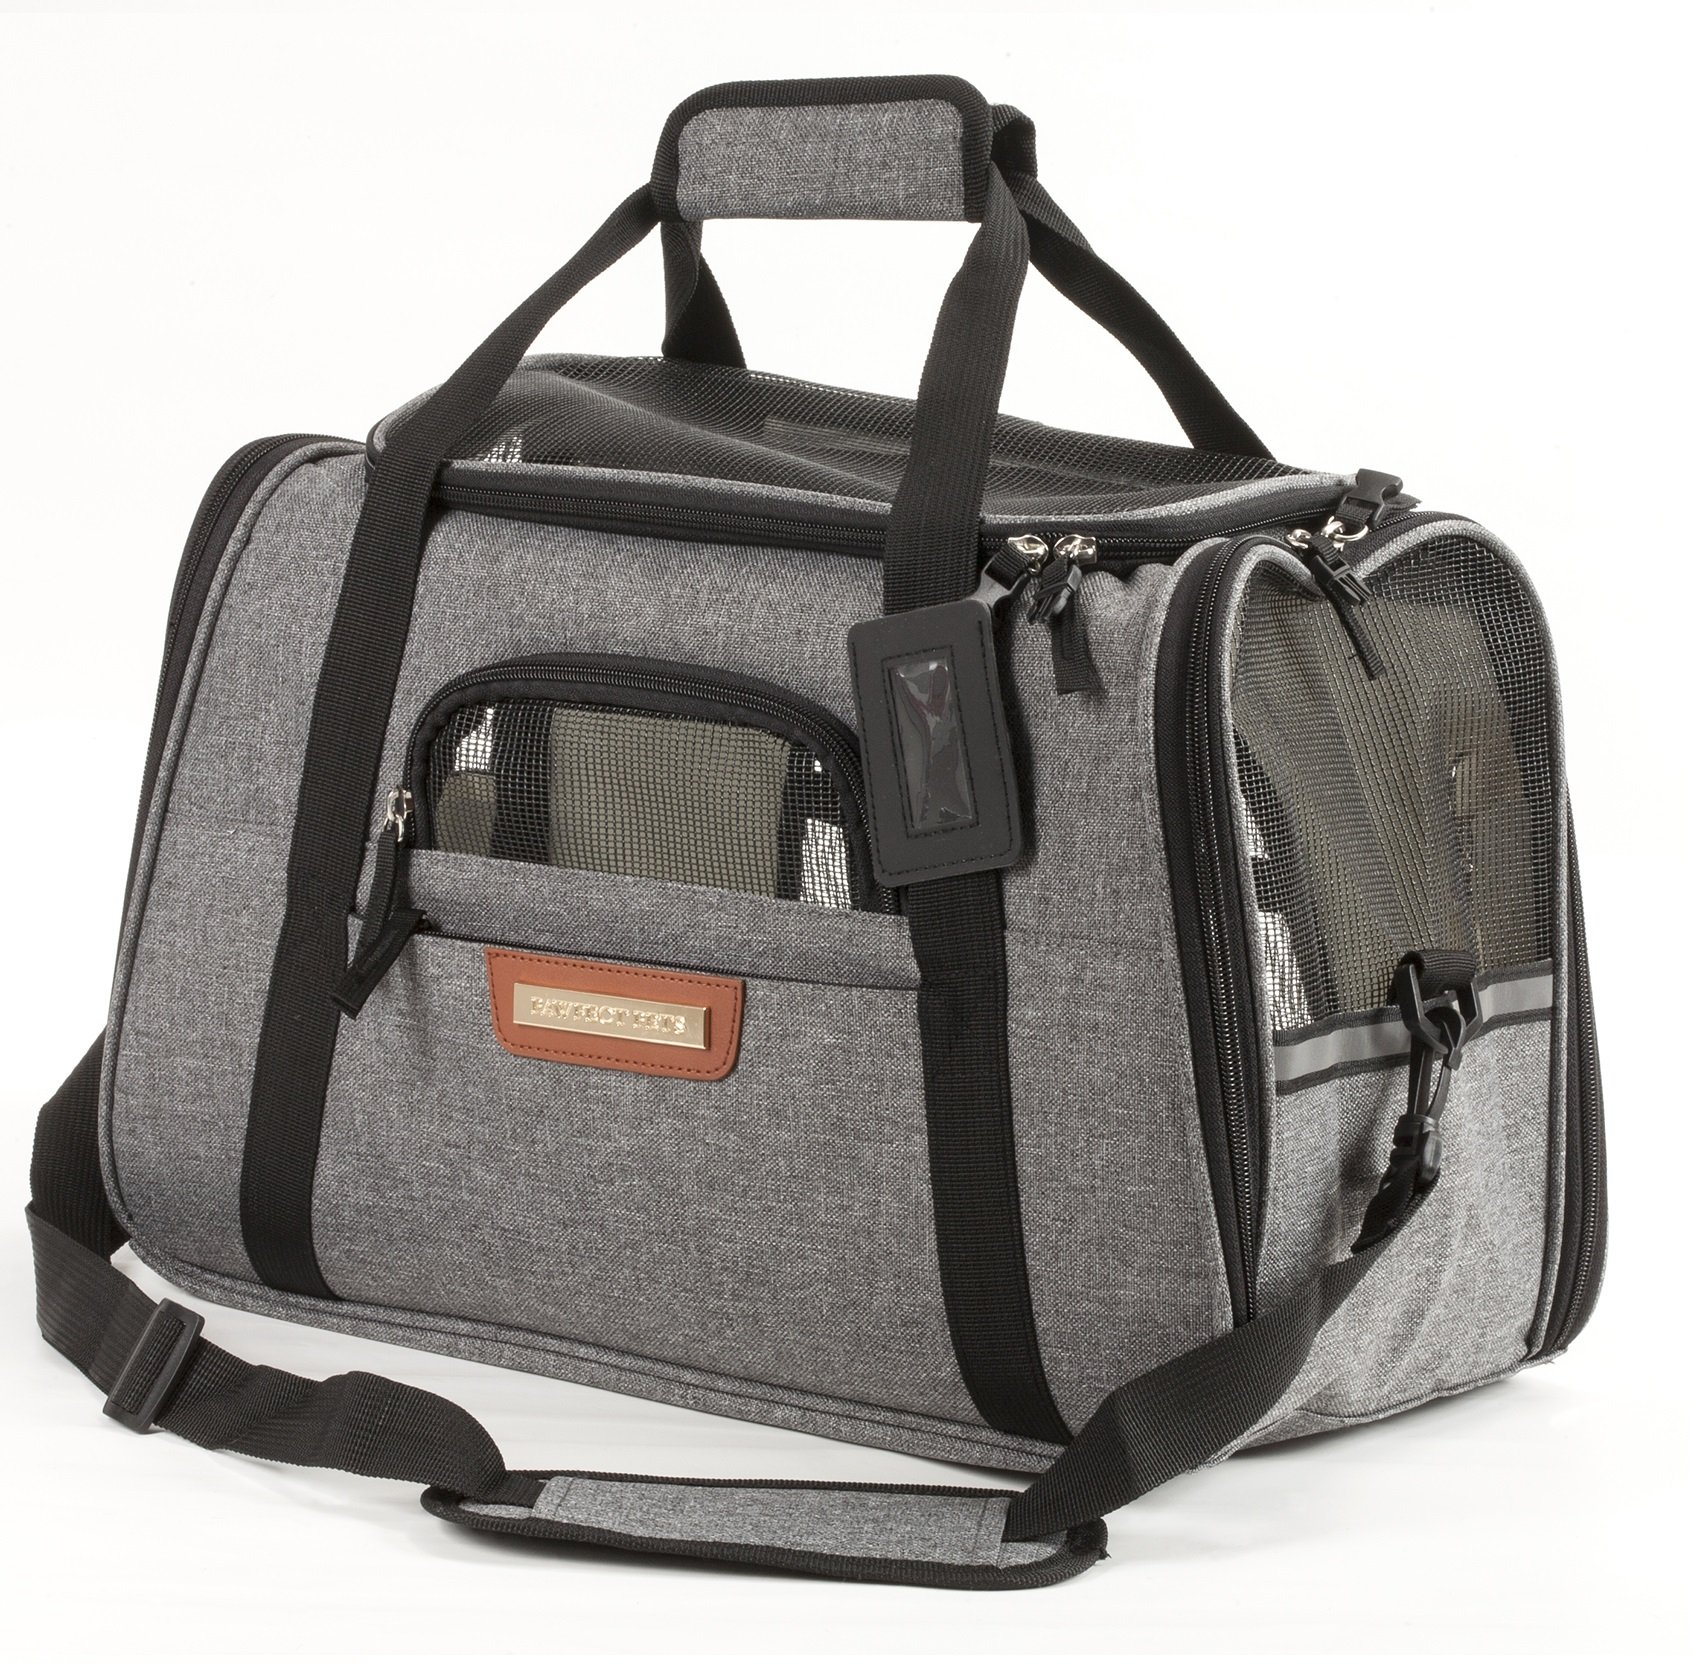 Pawfect Pets Pet Travel Carrier, Soft-Sided with Two Pet Mats for Small Dogs and Cats (Grey) by Pawfect Pets (Image #1)